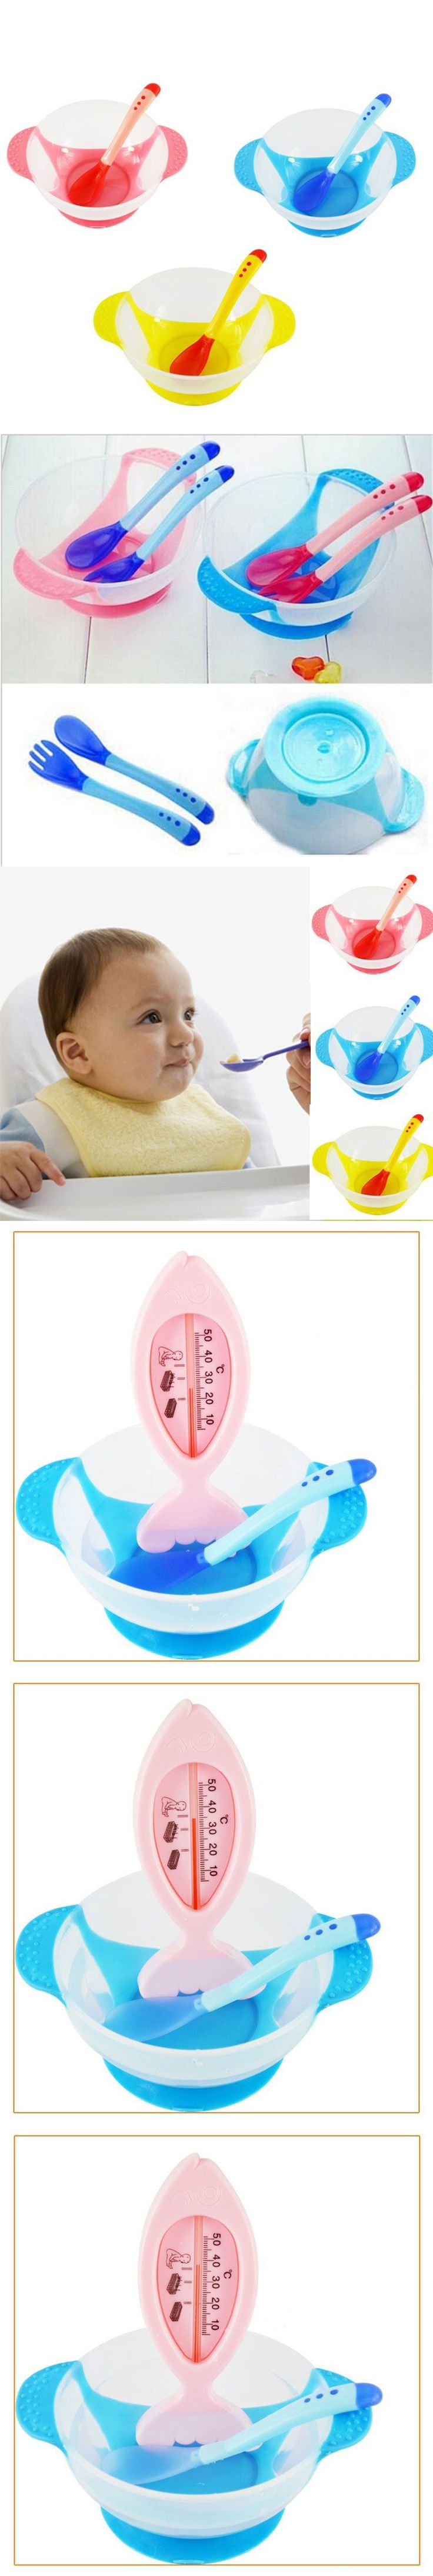 Toddler Temperature Sensing Feeding Lid Training Bowl with Spoon Cartoon Binaural Baby Feeding Tableware Child Plate Sucker Bowl